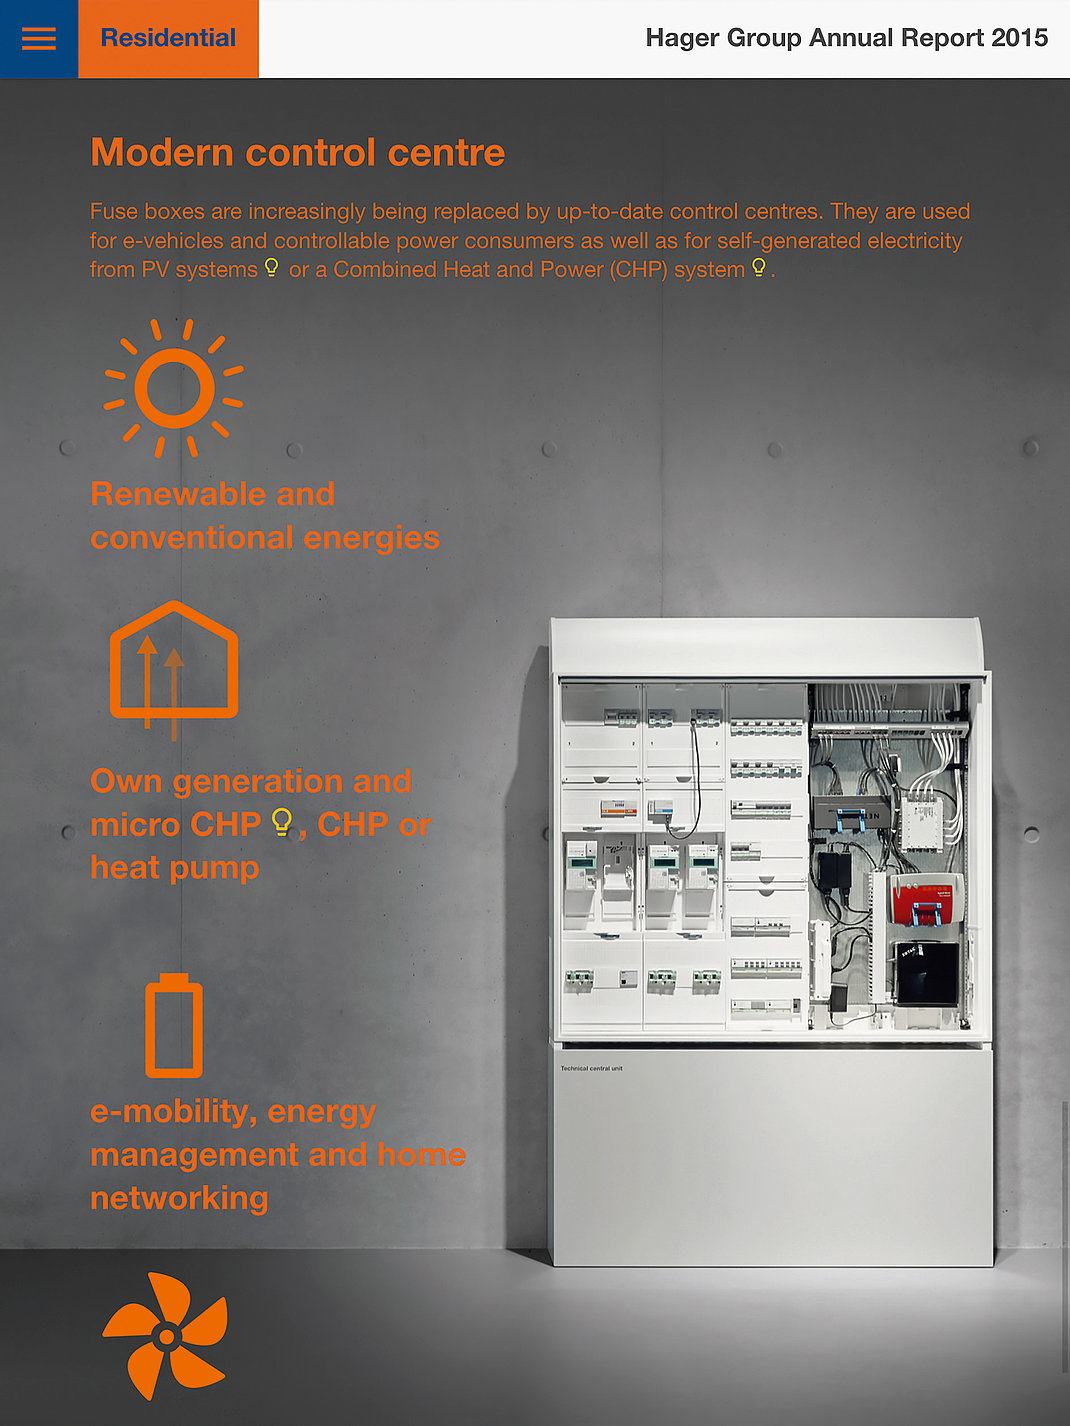 Red Dot Design Award Hager Group Annual Report 2015 Residential Well Pump Fuse Box Hagergroupcom